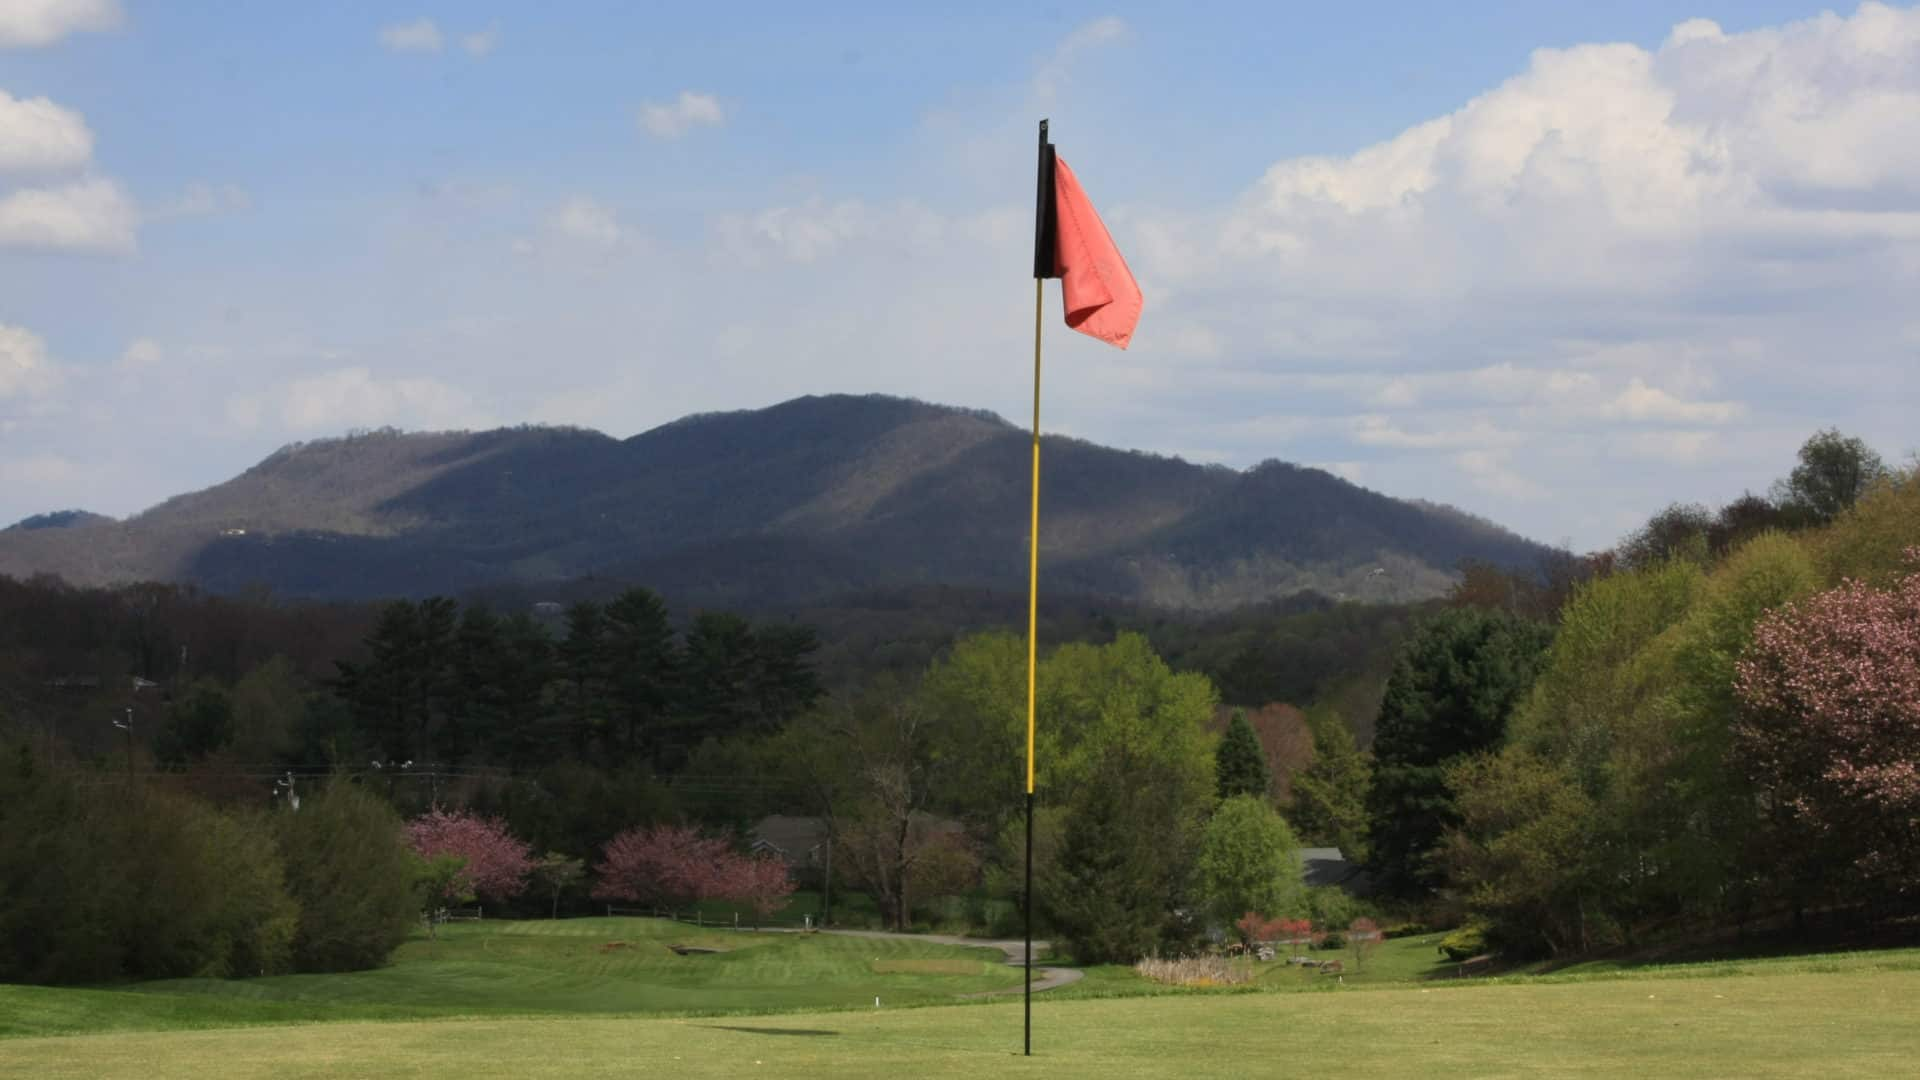 Golf hole with a picturesque mountain backdrop.